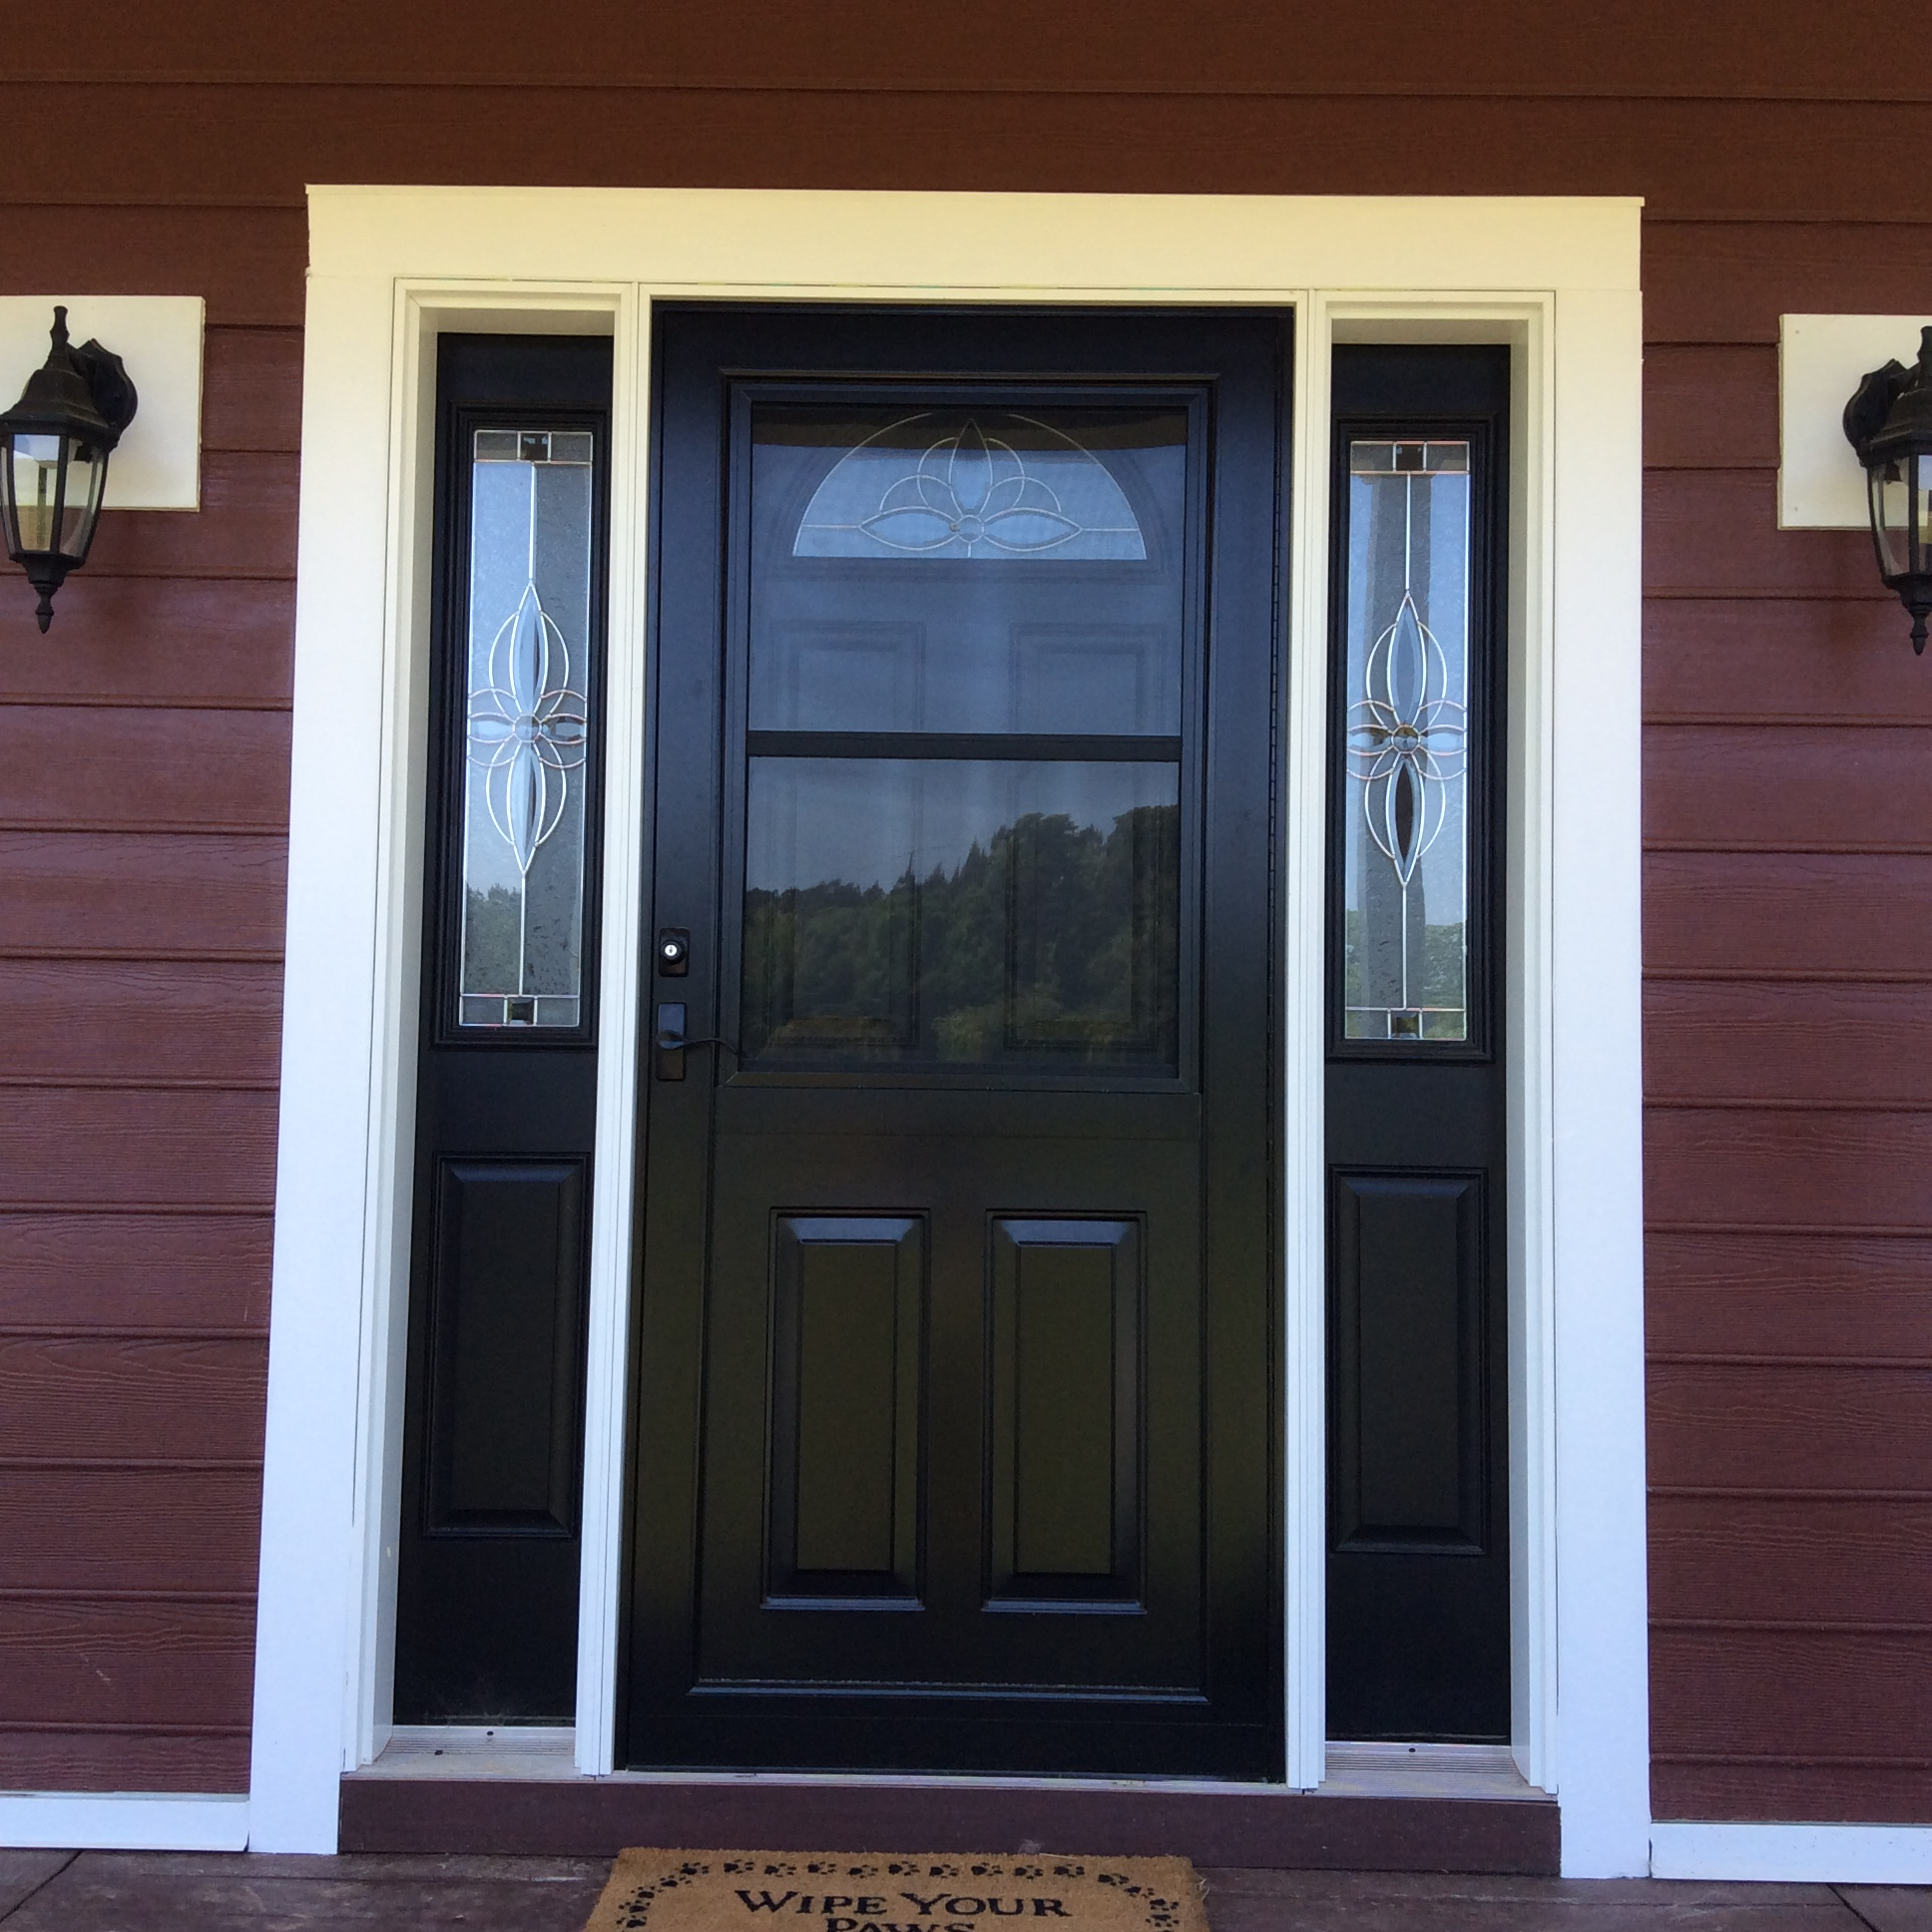 Model 397-C French storm door